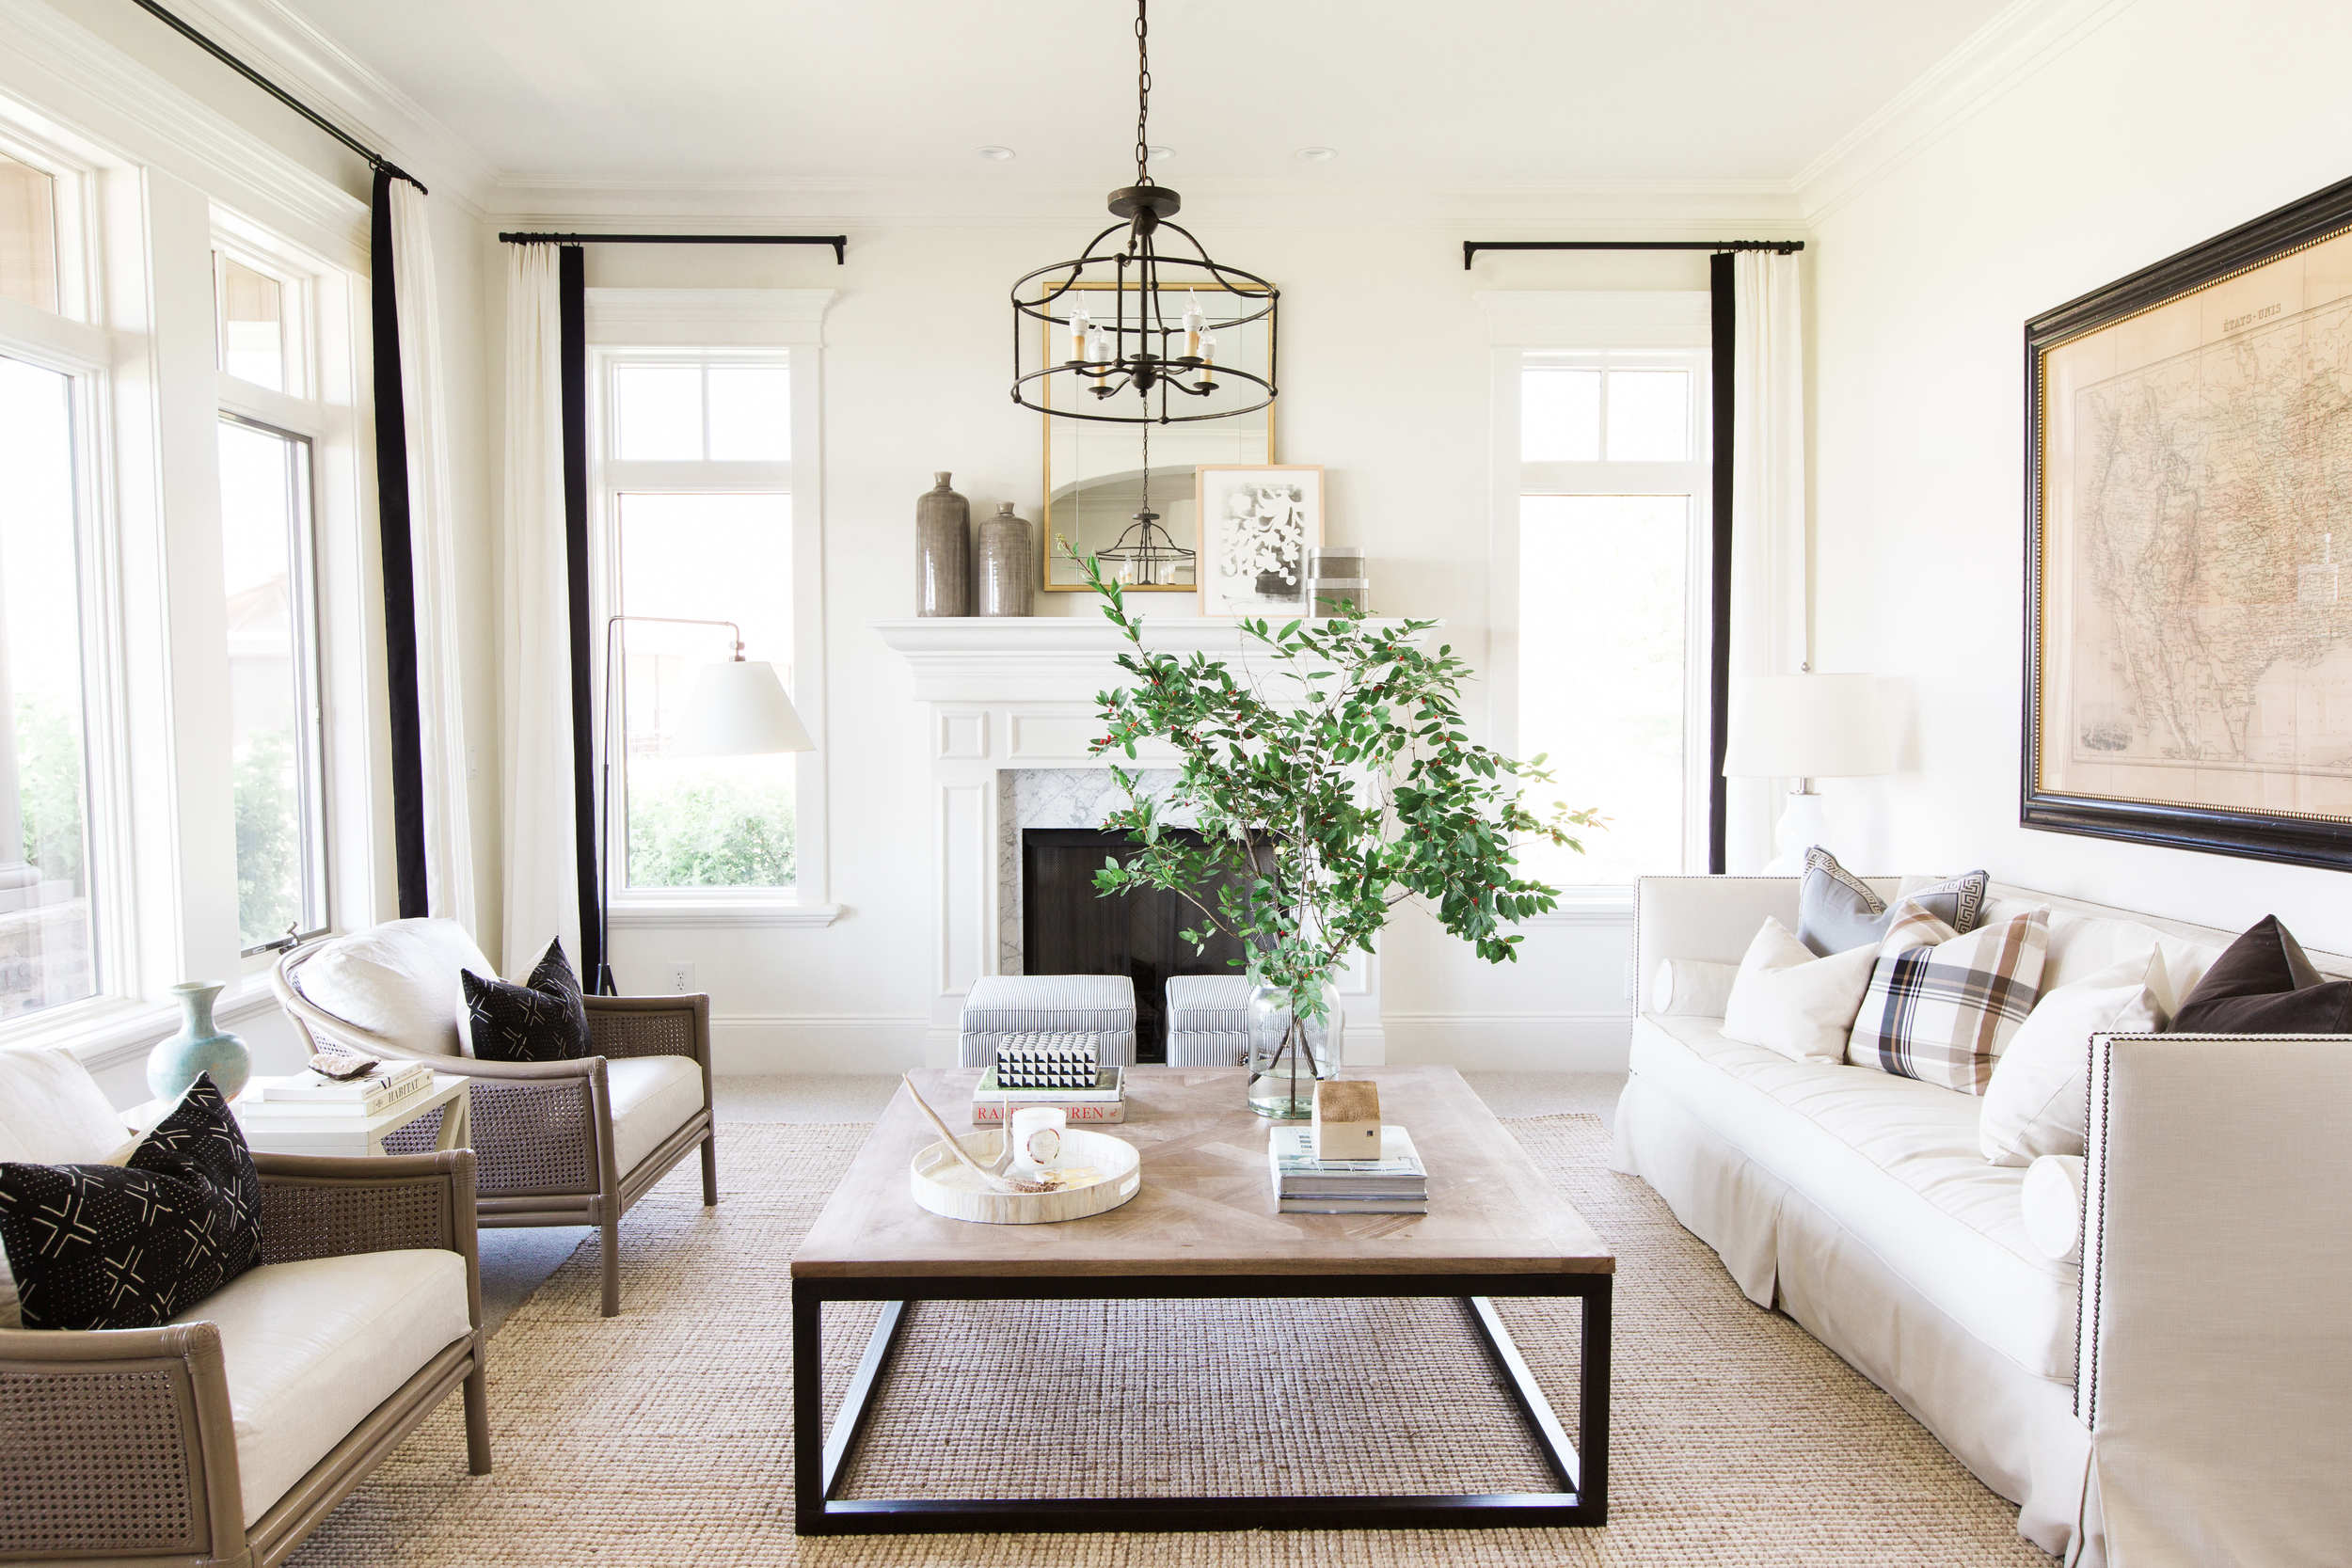 An earthy, textural living room designed by Studio McGee and recreated for less by @copycatchic | budget home decor for less